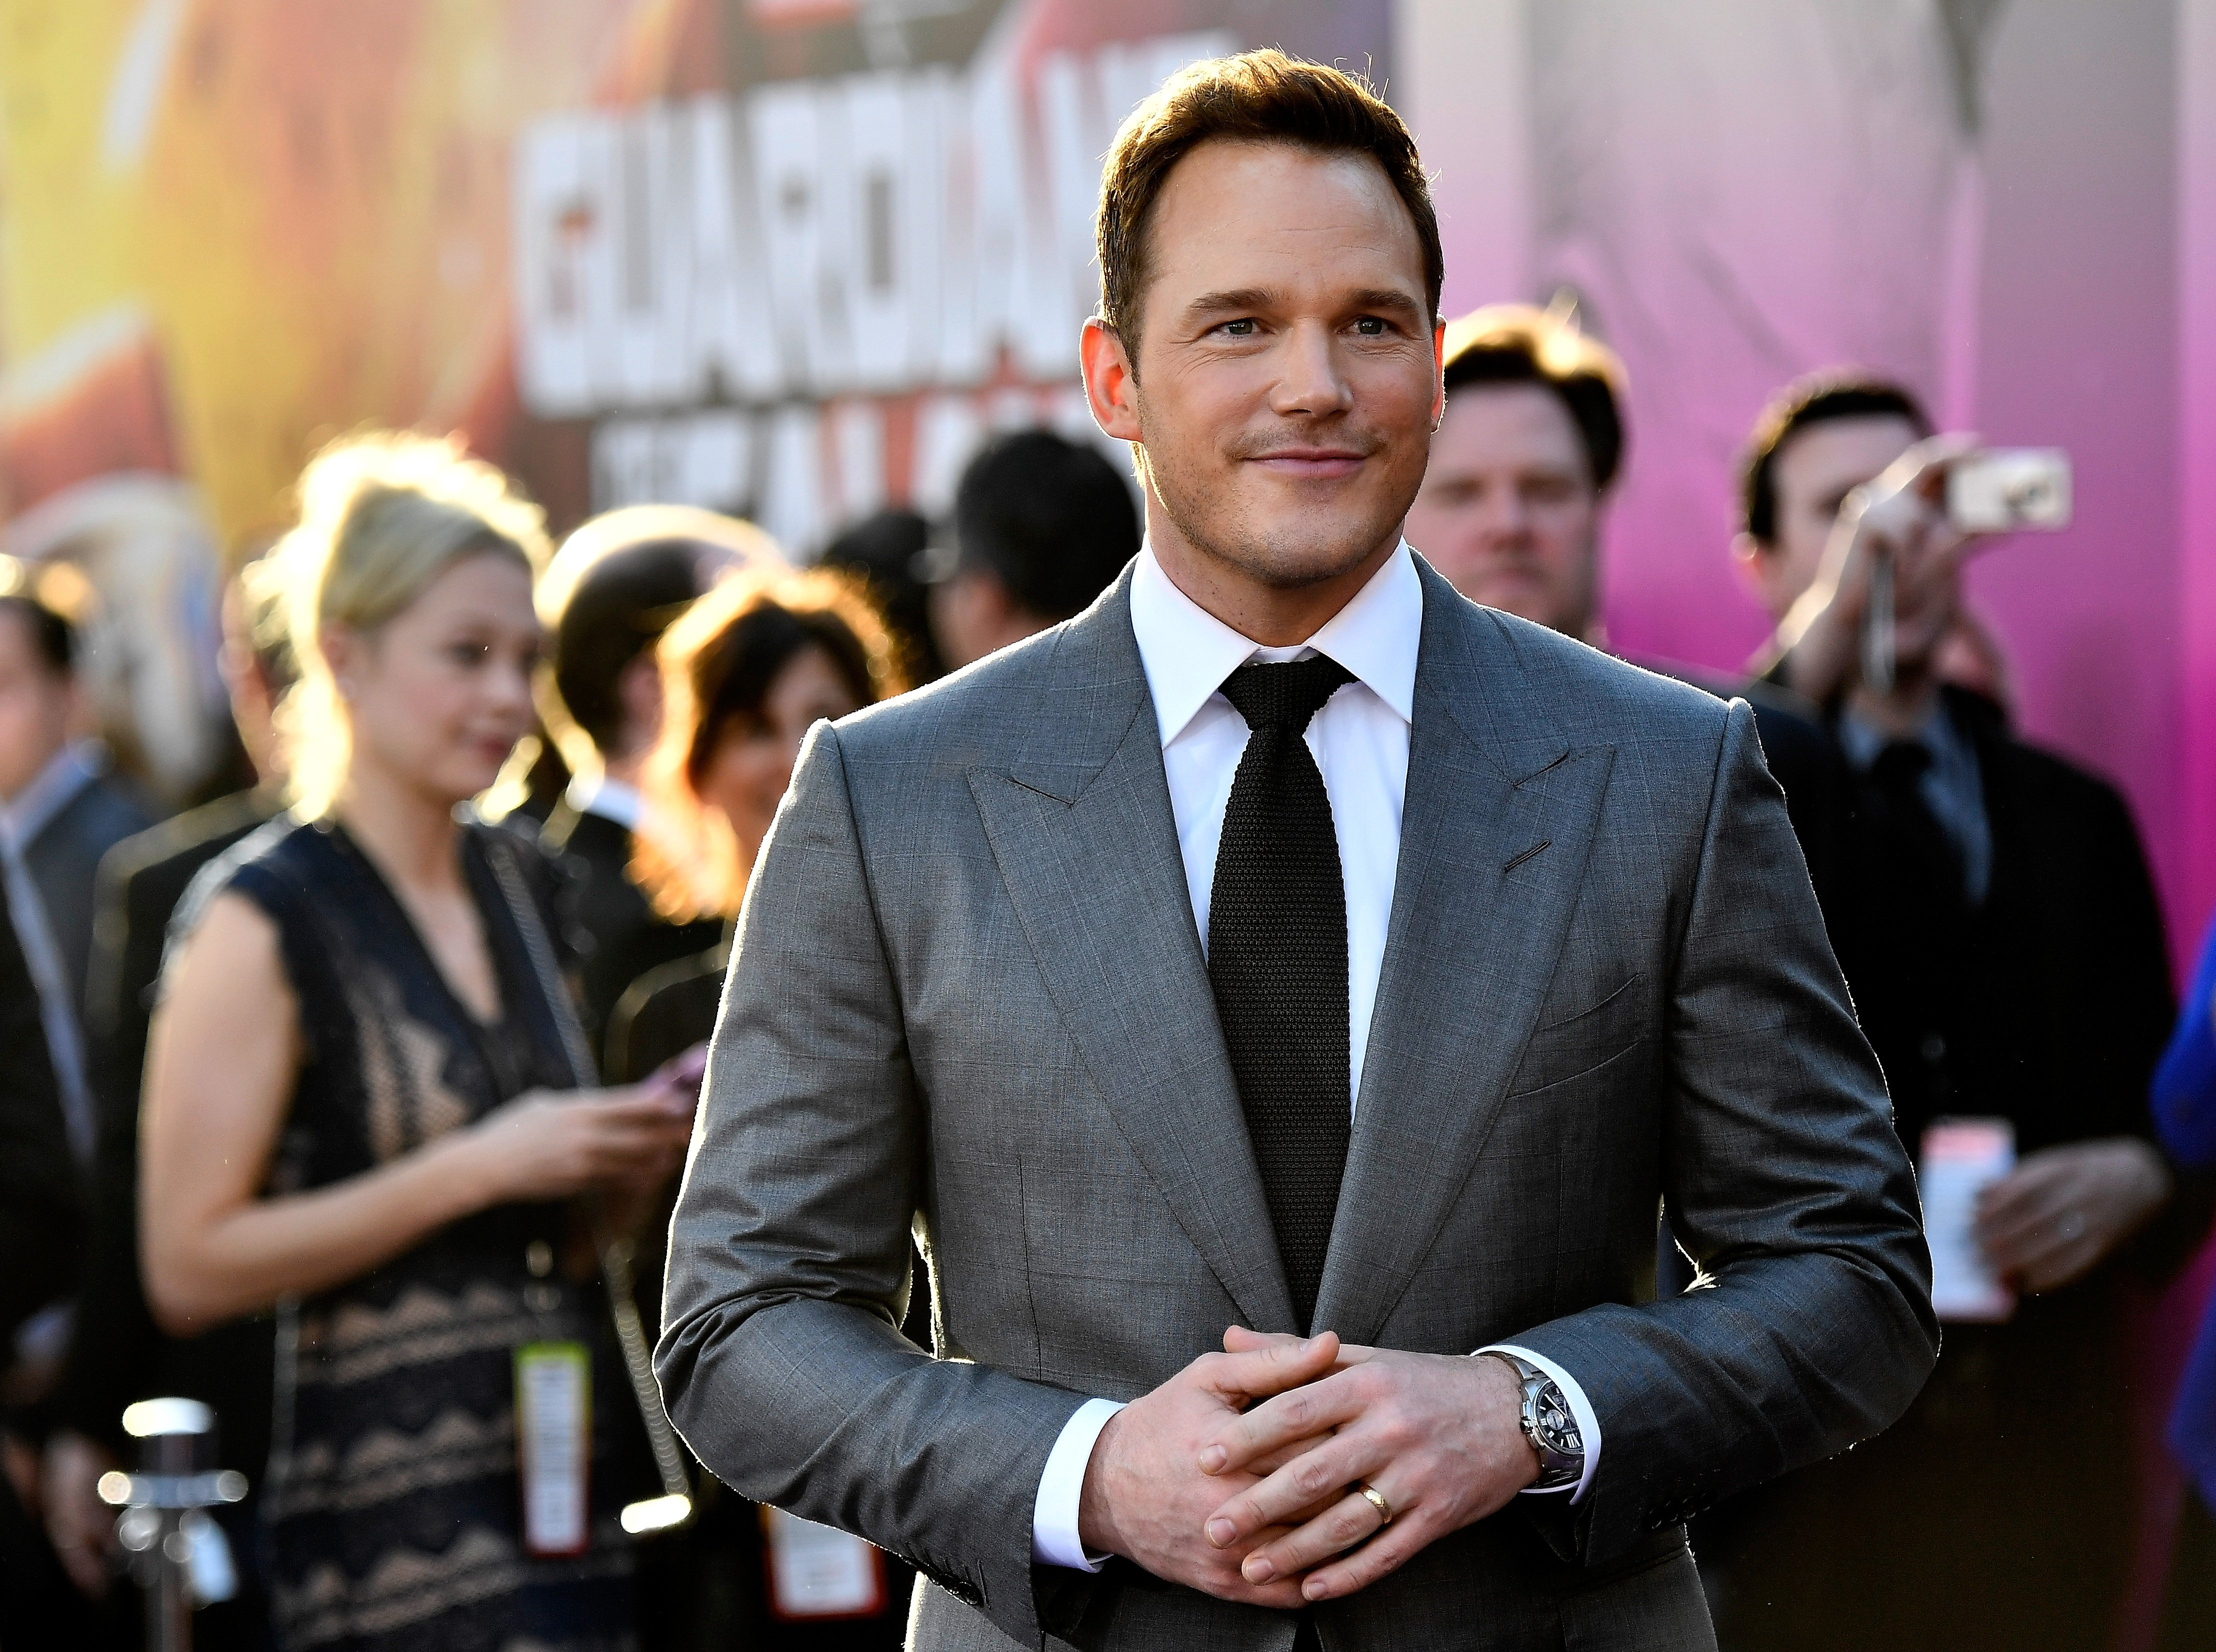 """Chris Pratt at the premiere of Disney and Marvel's """"Guardians of the Galaxy Vol. 2""""  on April 19, 2017 in Hollywood, California. 